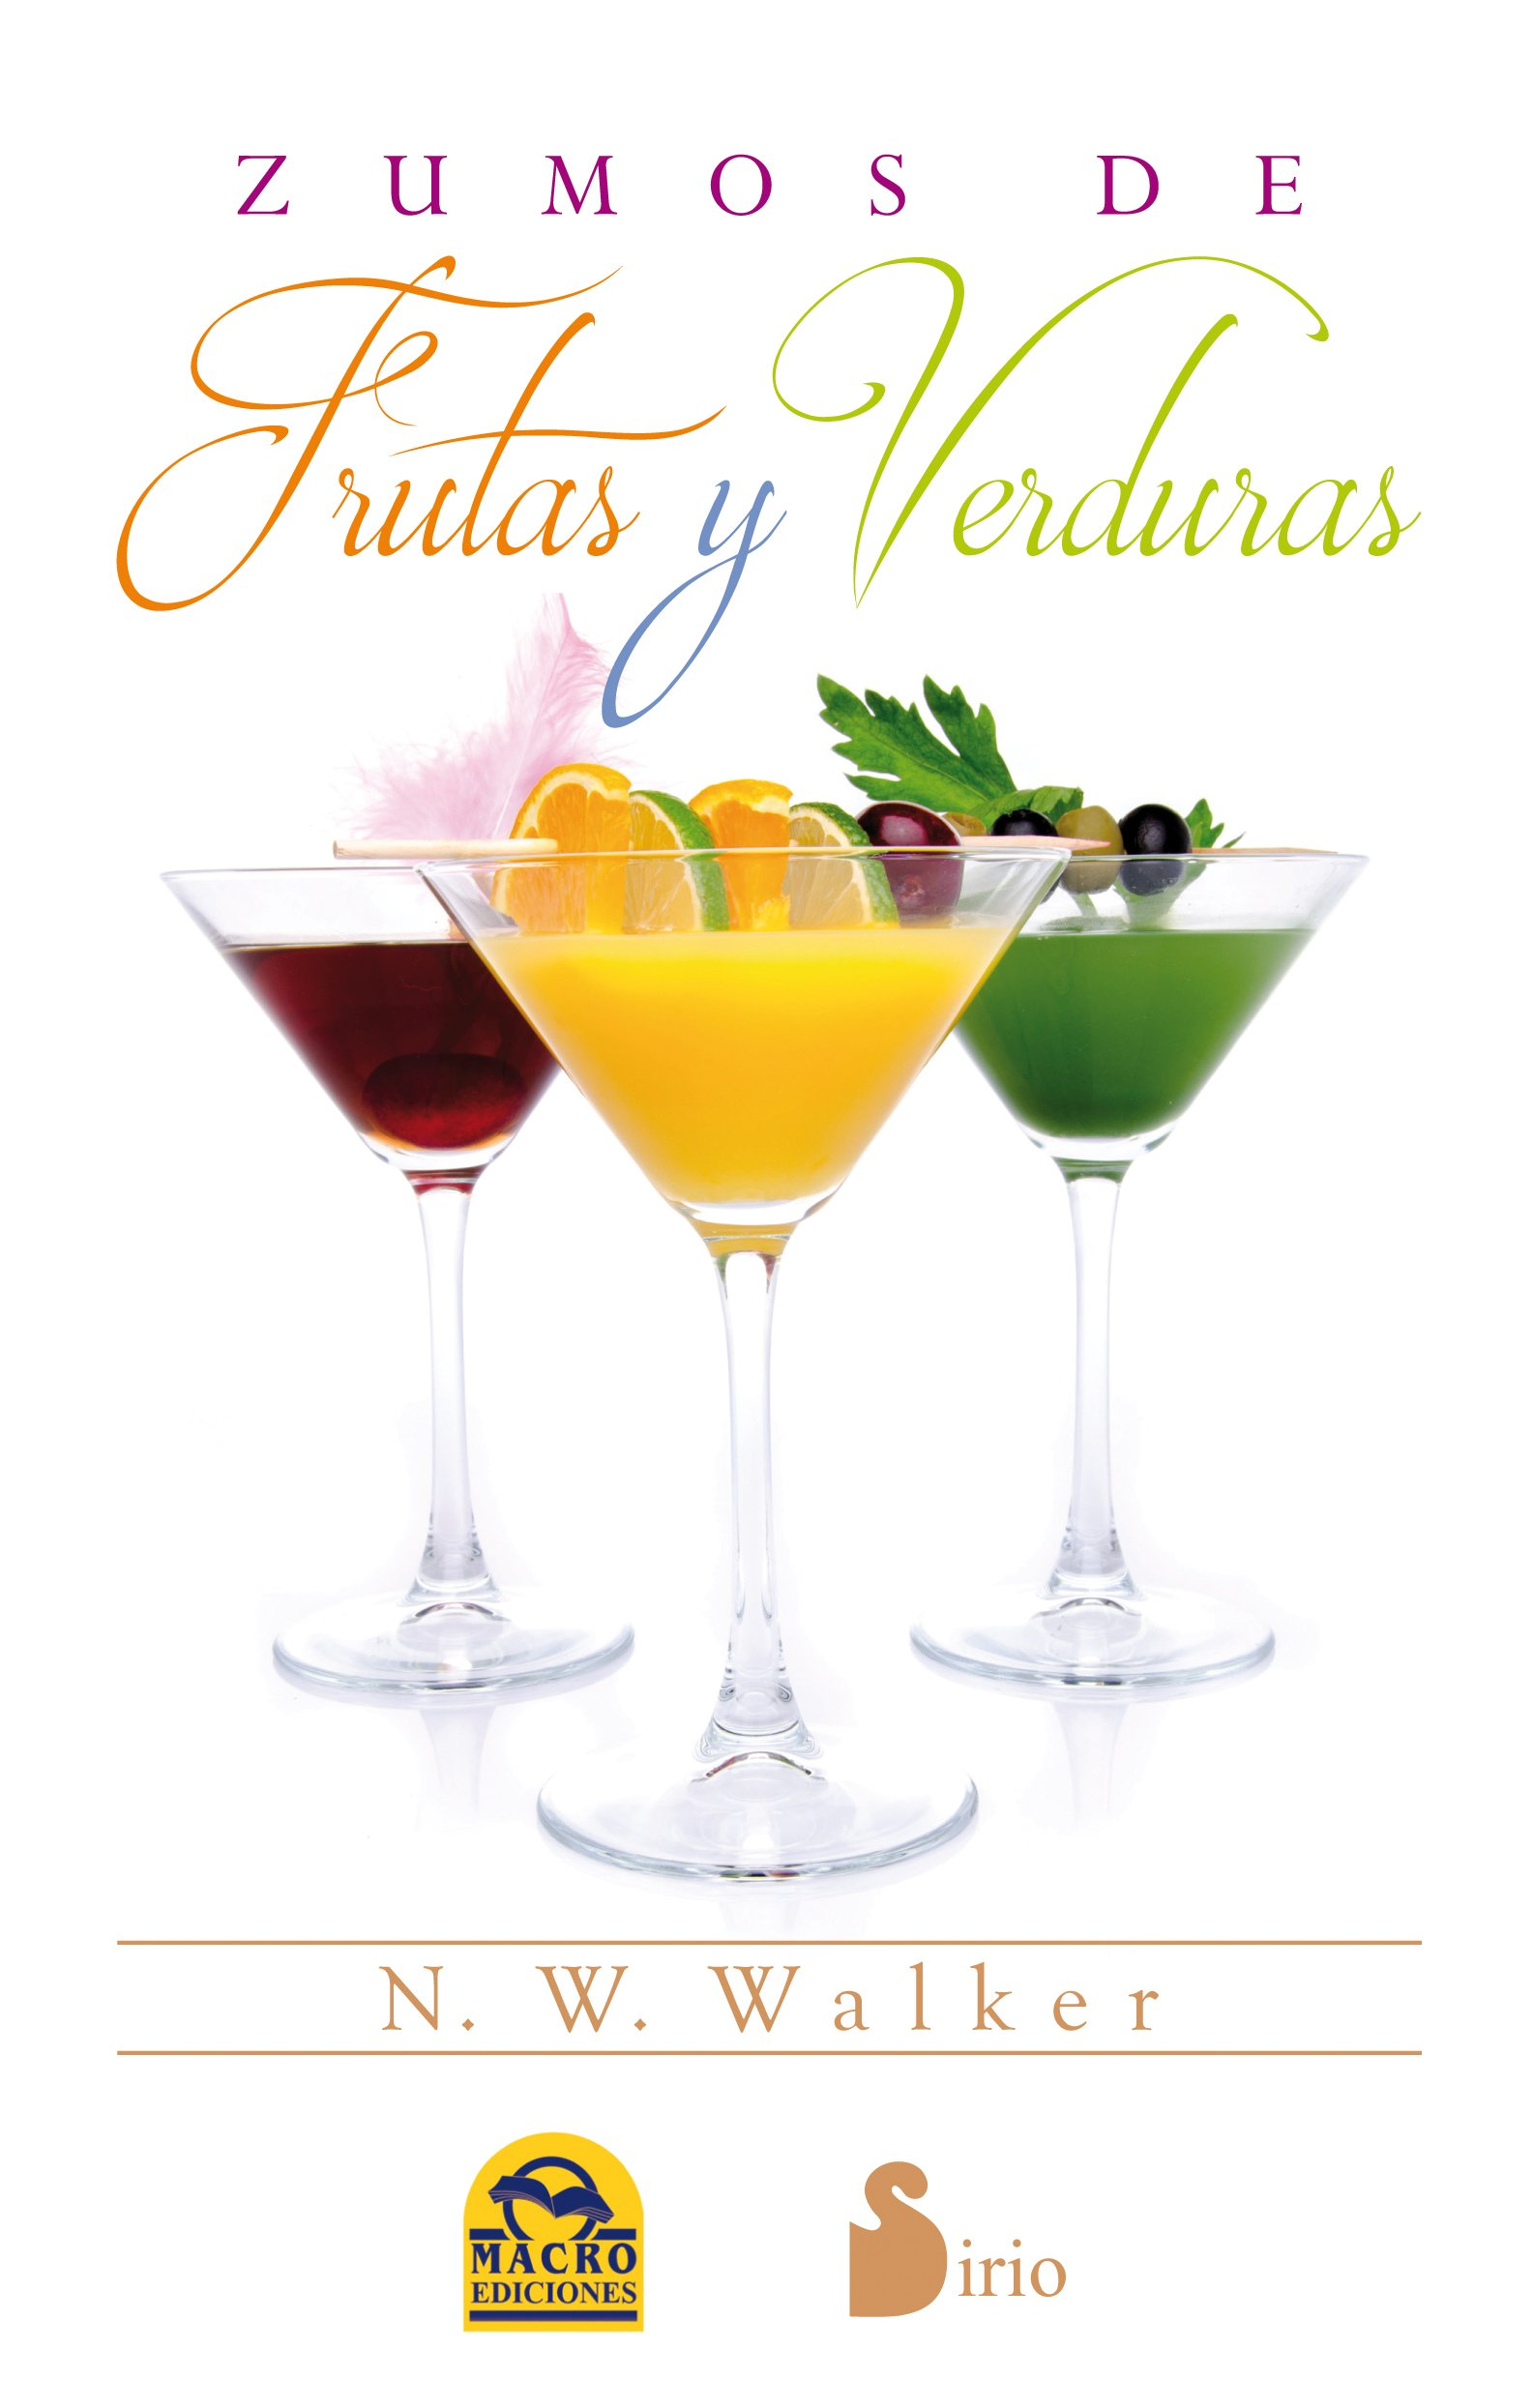 Amazon.com: Zumos de frutas y verduras (Spanish Edition) (9788416233526): N. H. Walker: Books